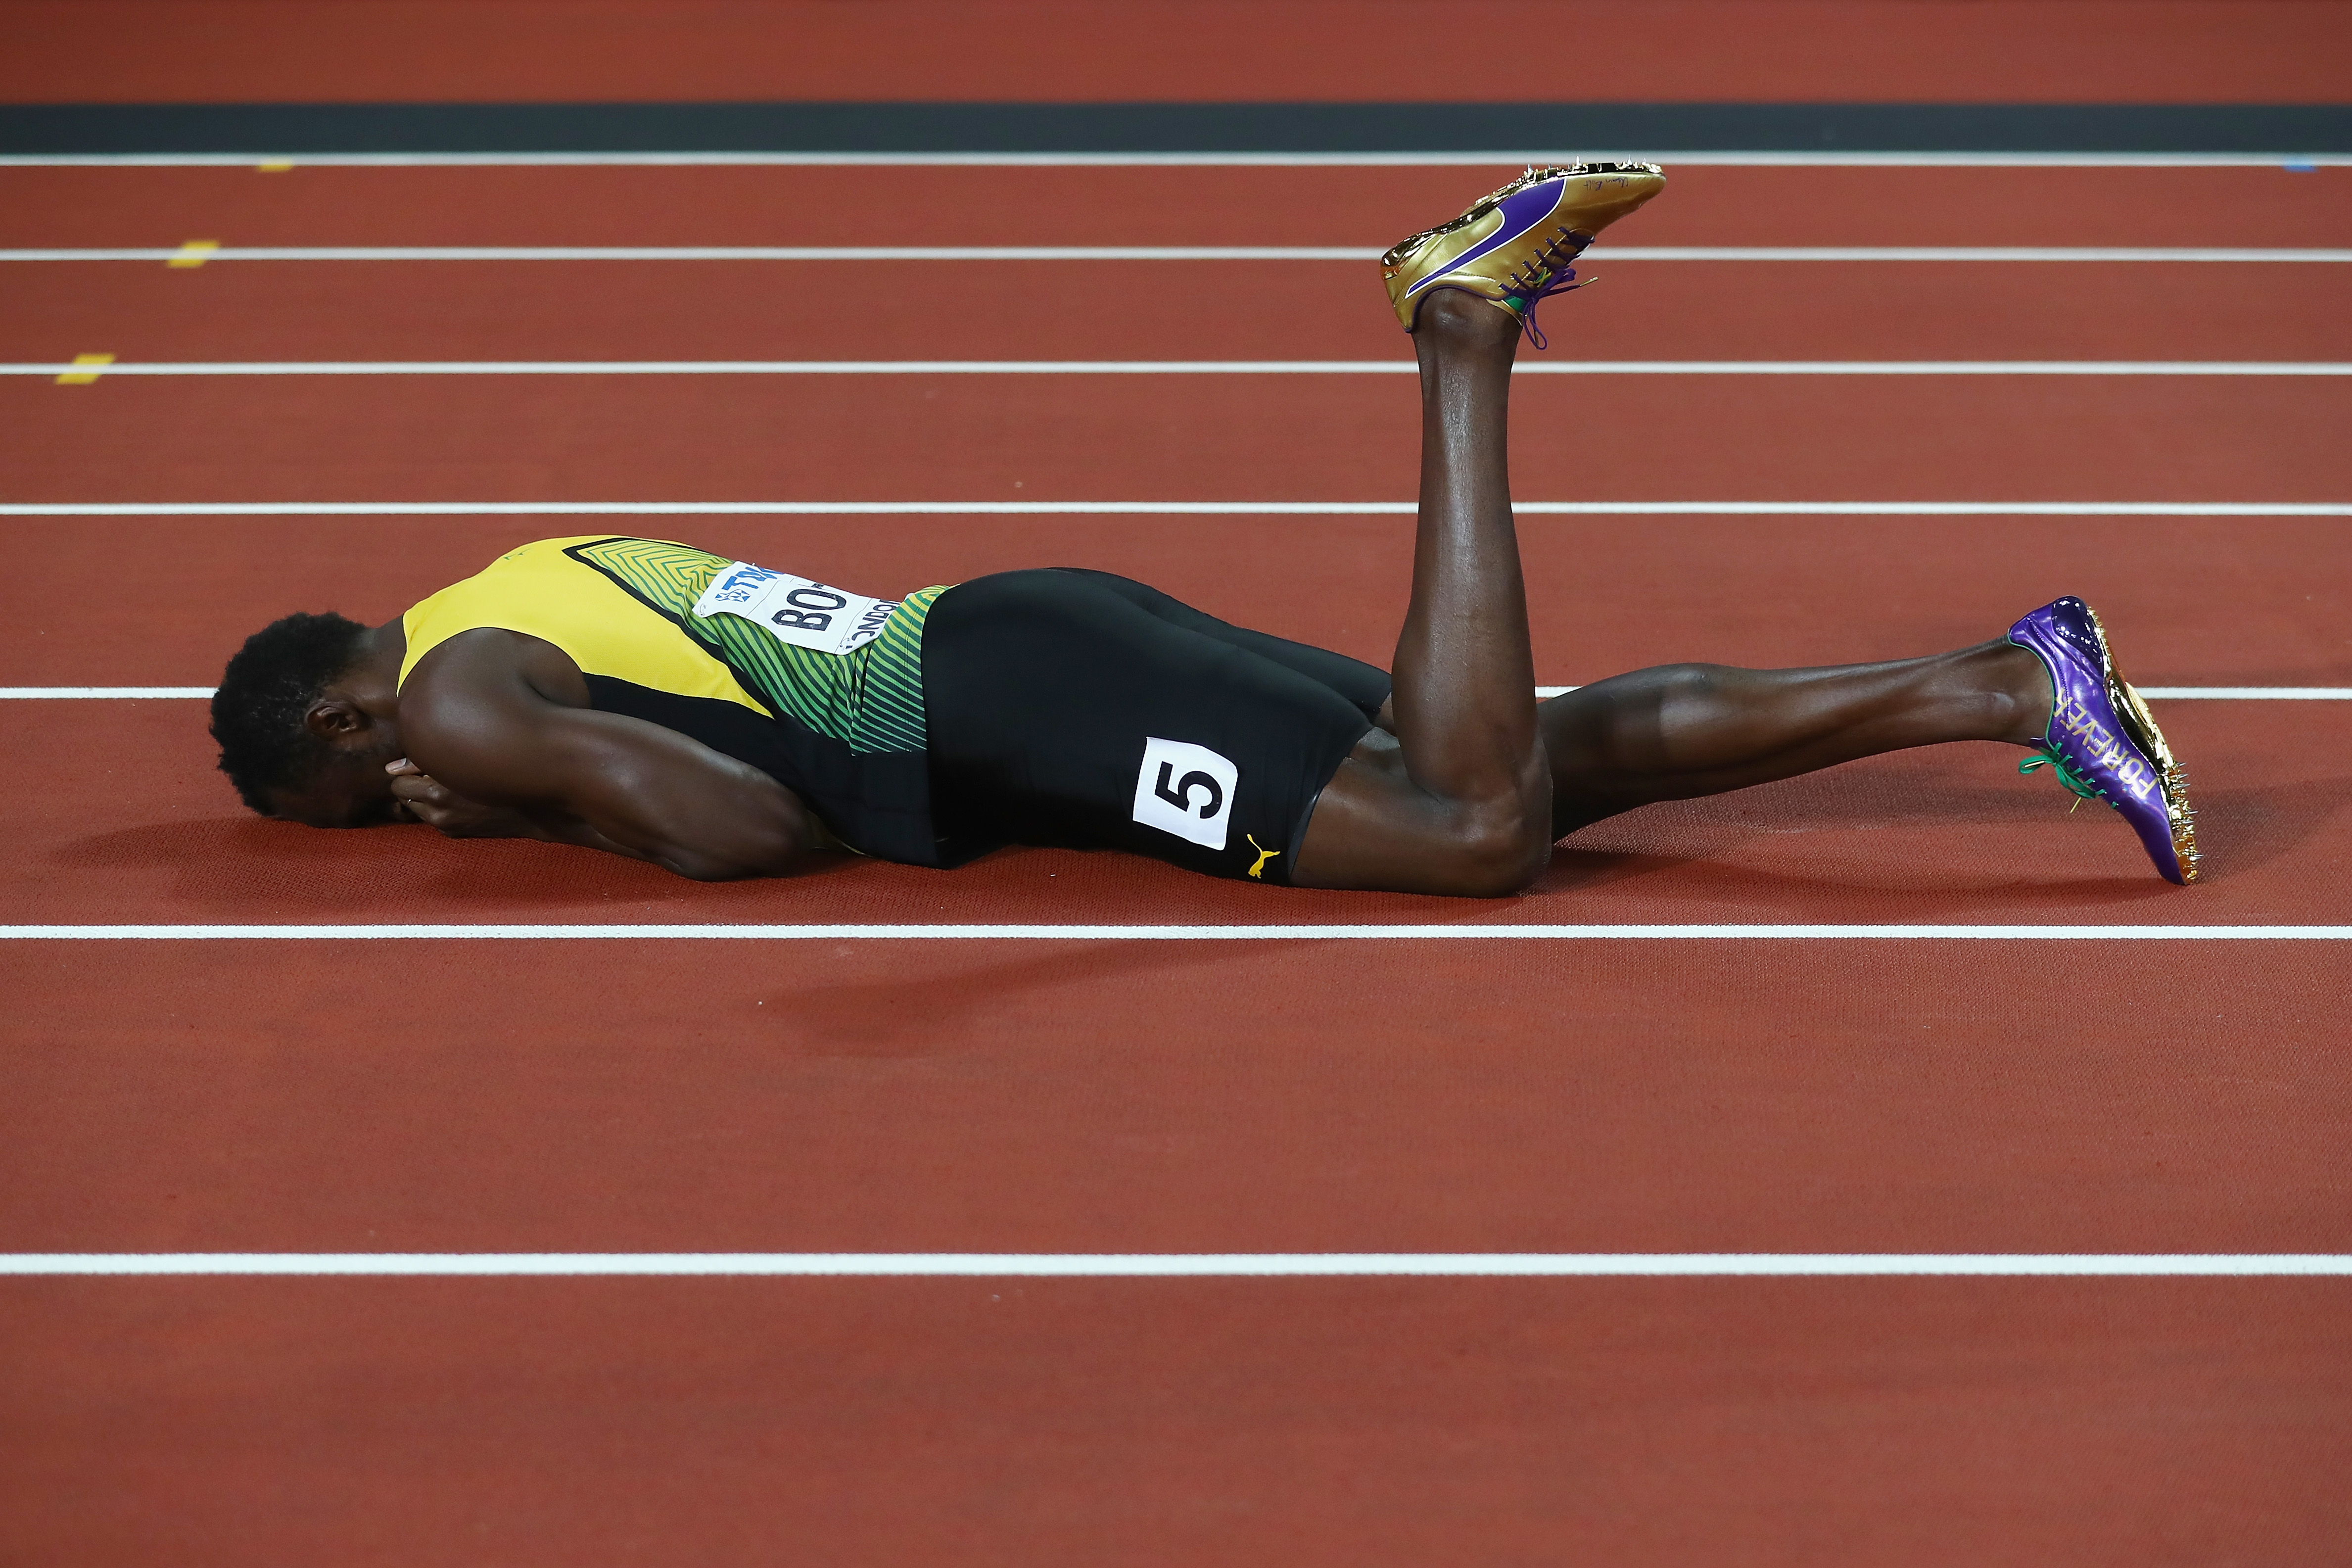 usain bolt lost his final career race but hes still the